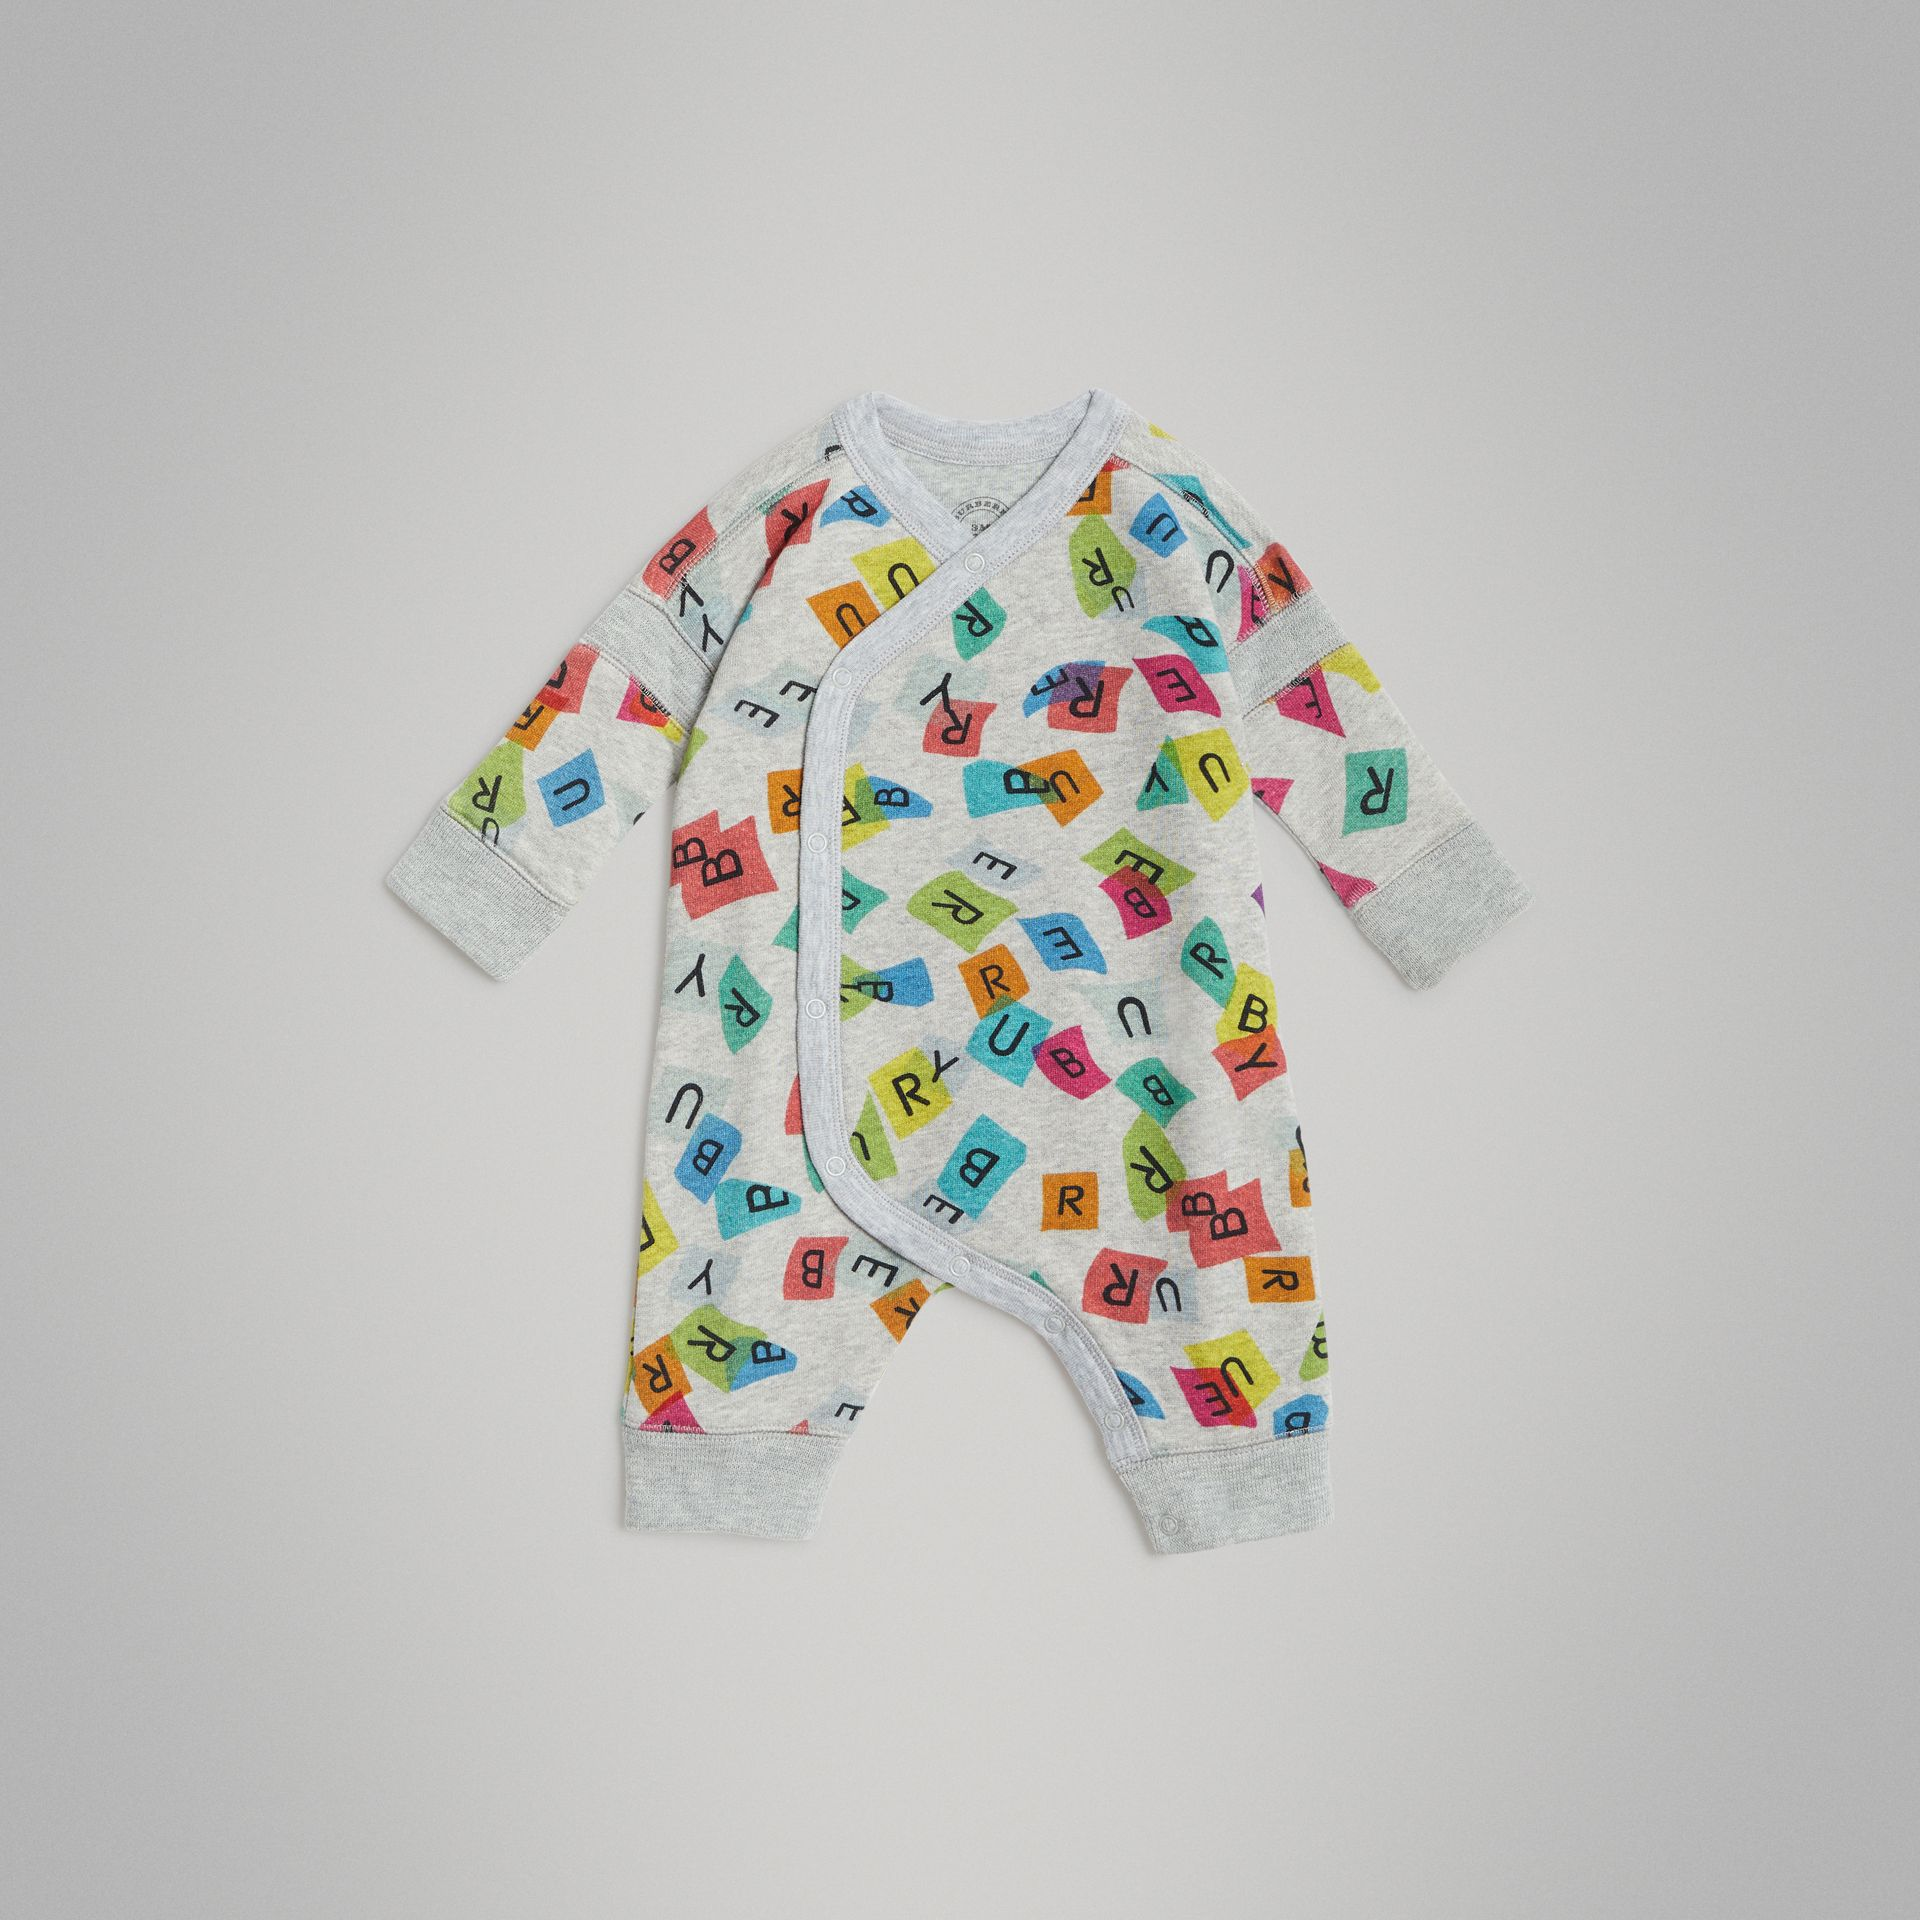 Confetti Letter Print Cotton Jumpsuit in Grey Melange - Children | Burberry - gallery image 2